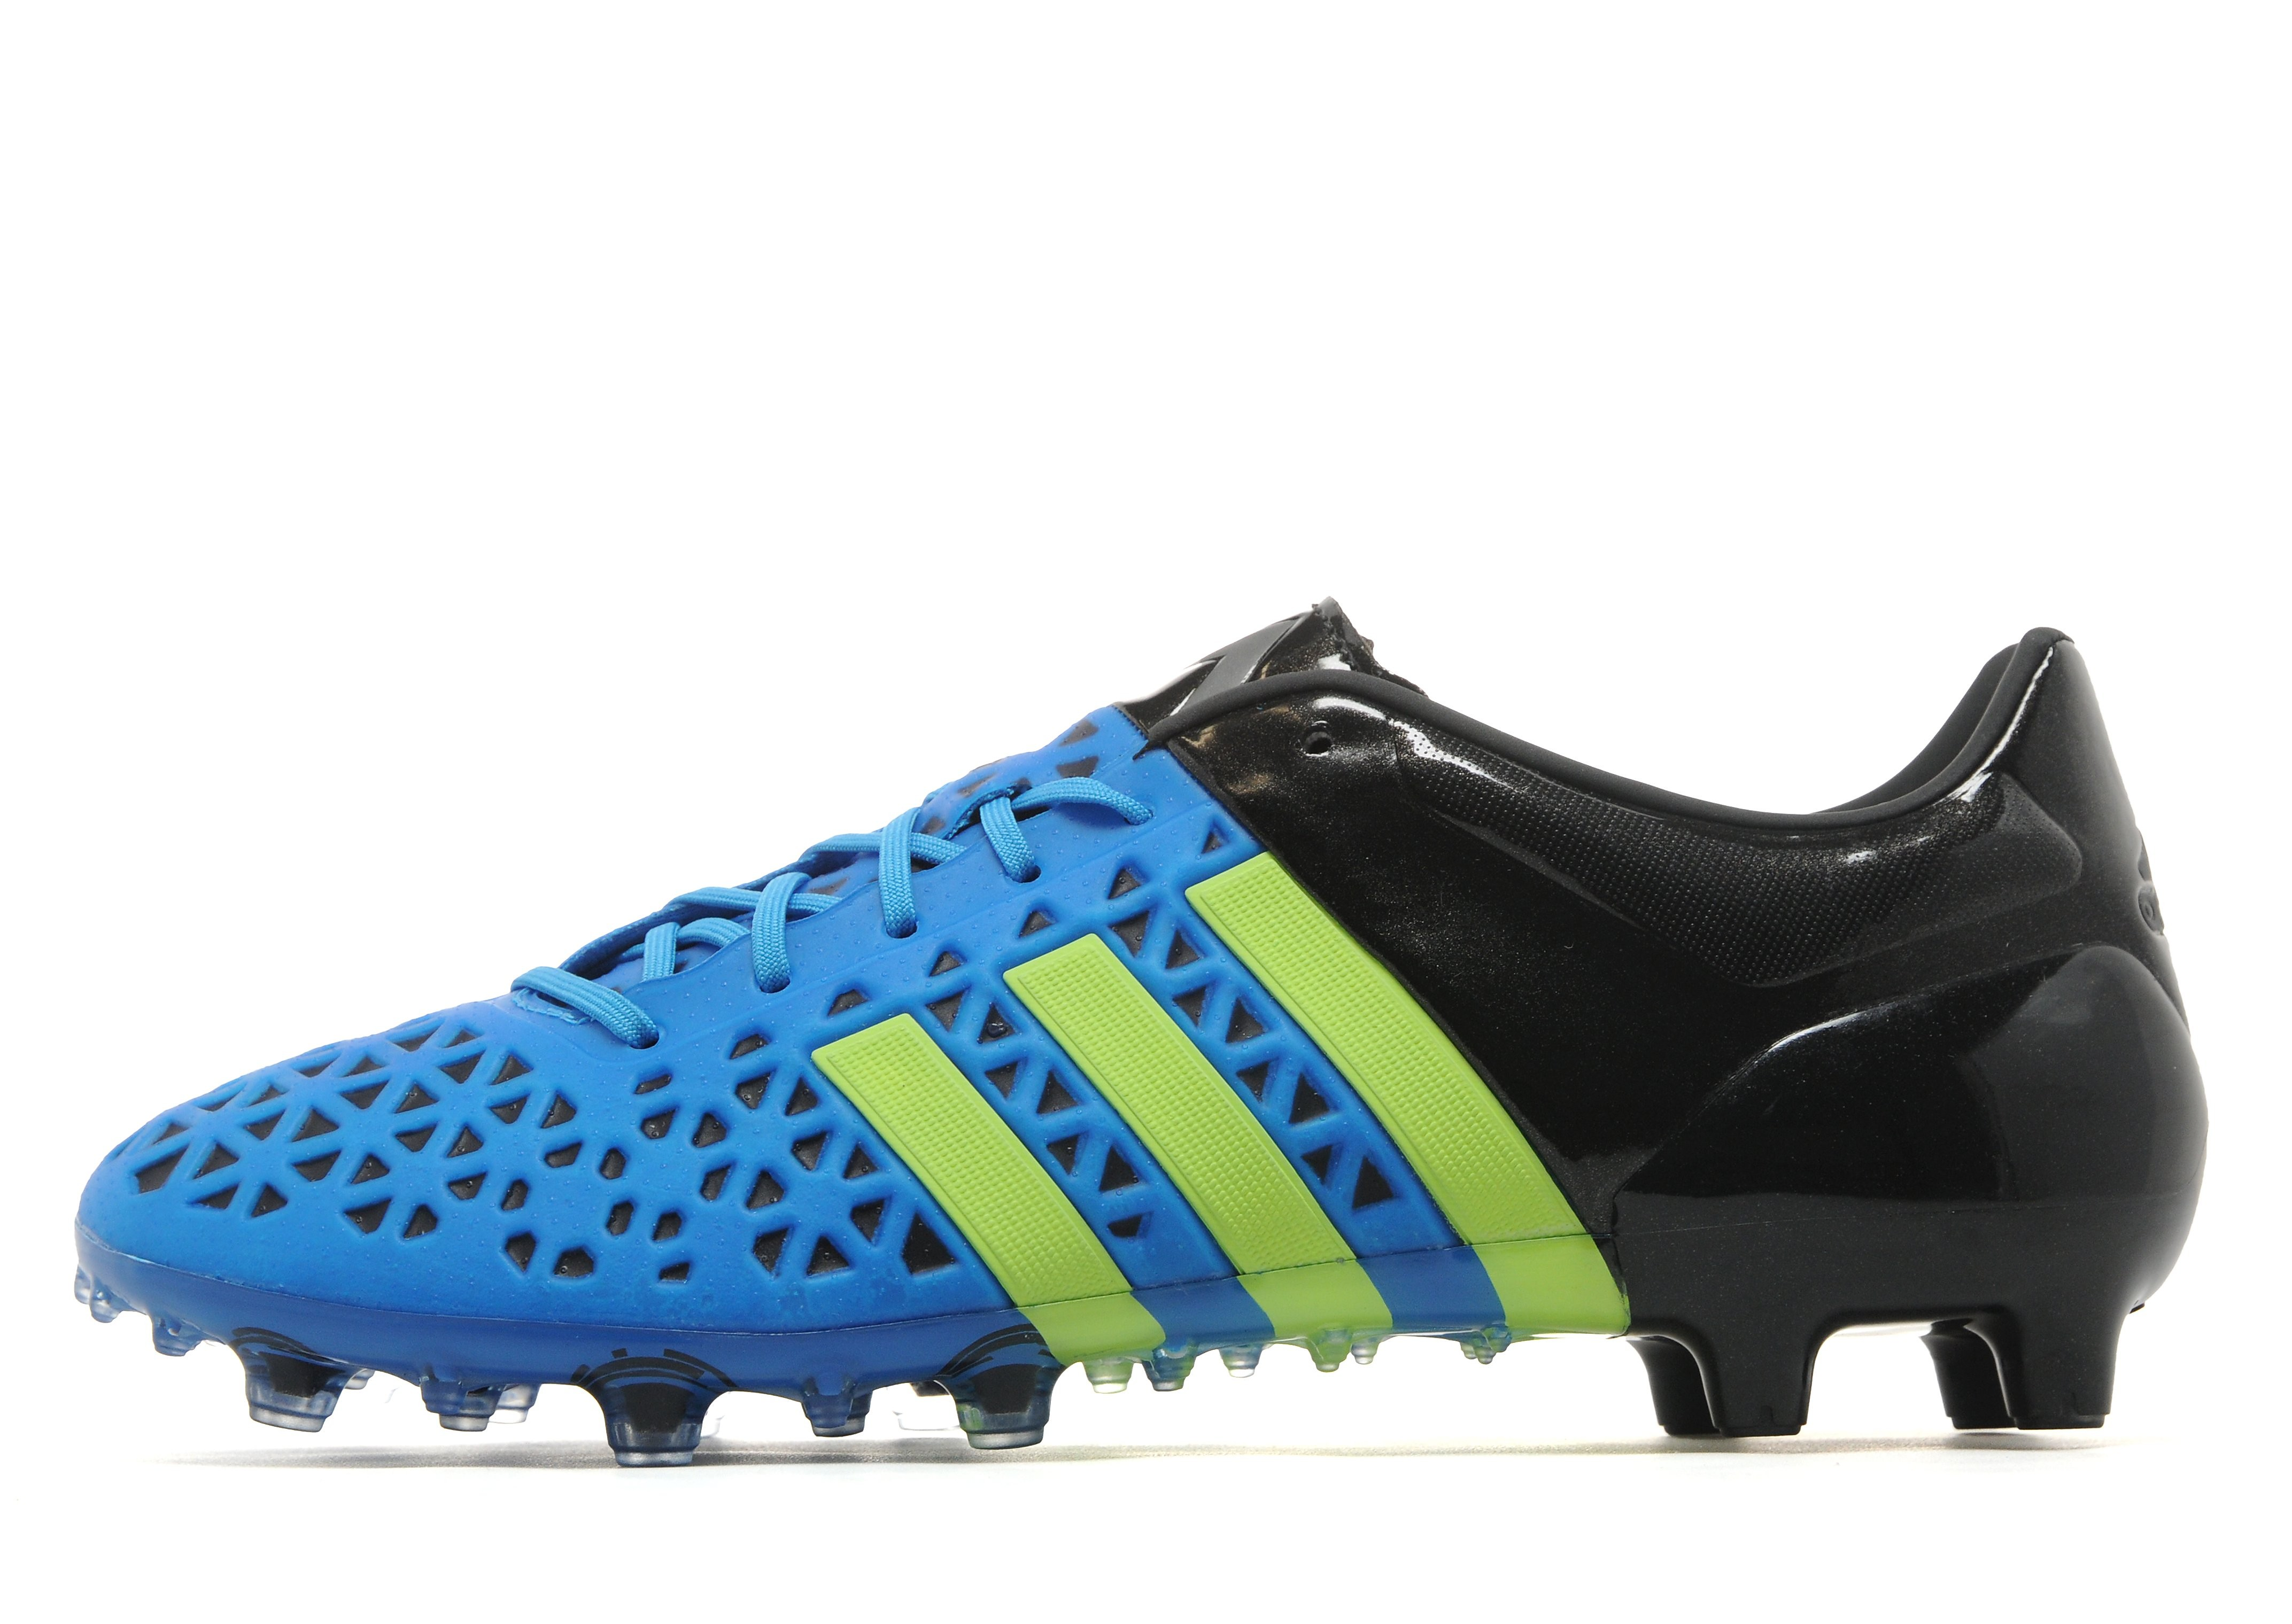 adidas Ace 15.1 Firm Ground